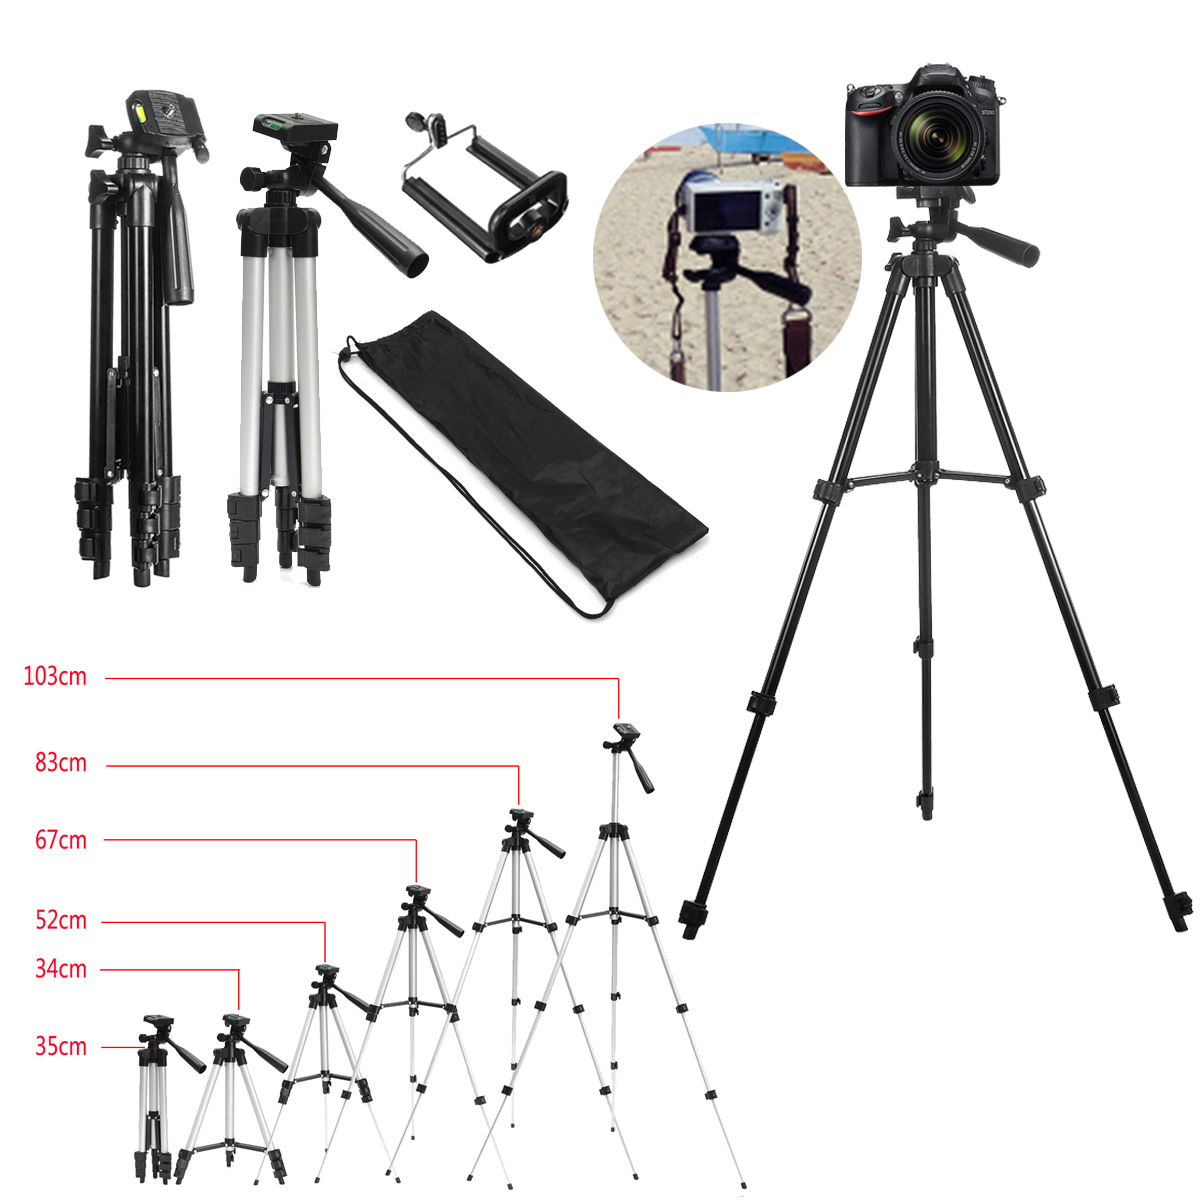 Extendable Mobile <font><b>Phone</b></font> Digital <font><b>Camera</b></font> <font><b>Tripod</b></font> <font><b>Stand</b></font> Mount Holder Clip for Live for Youtube For Nikon for Canon for iPhone XS MAS image